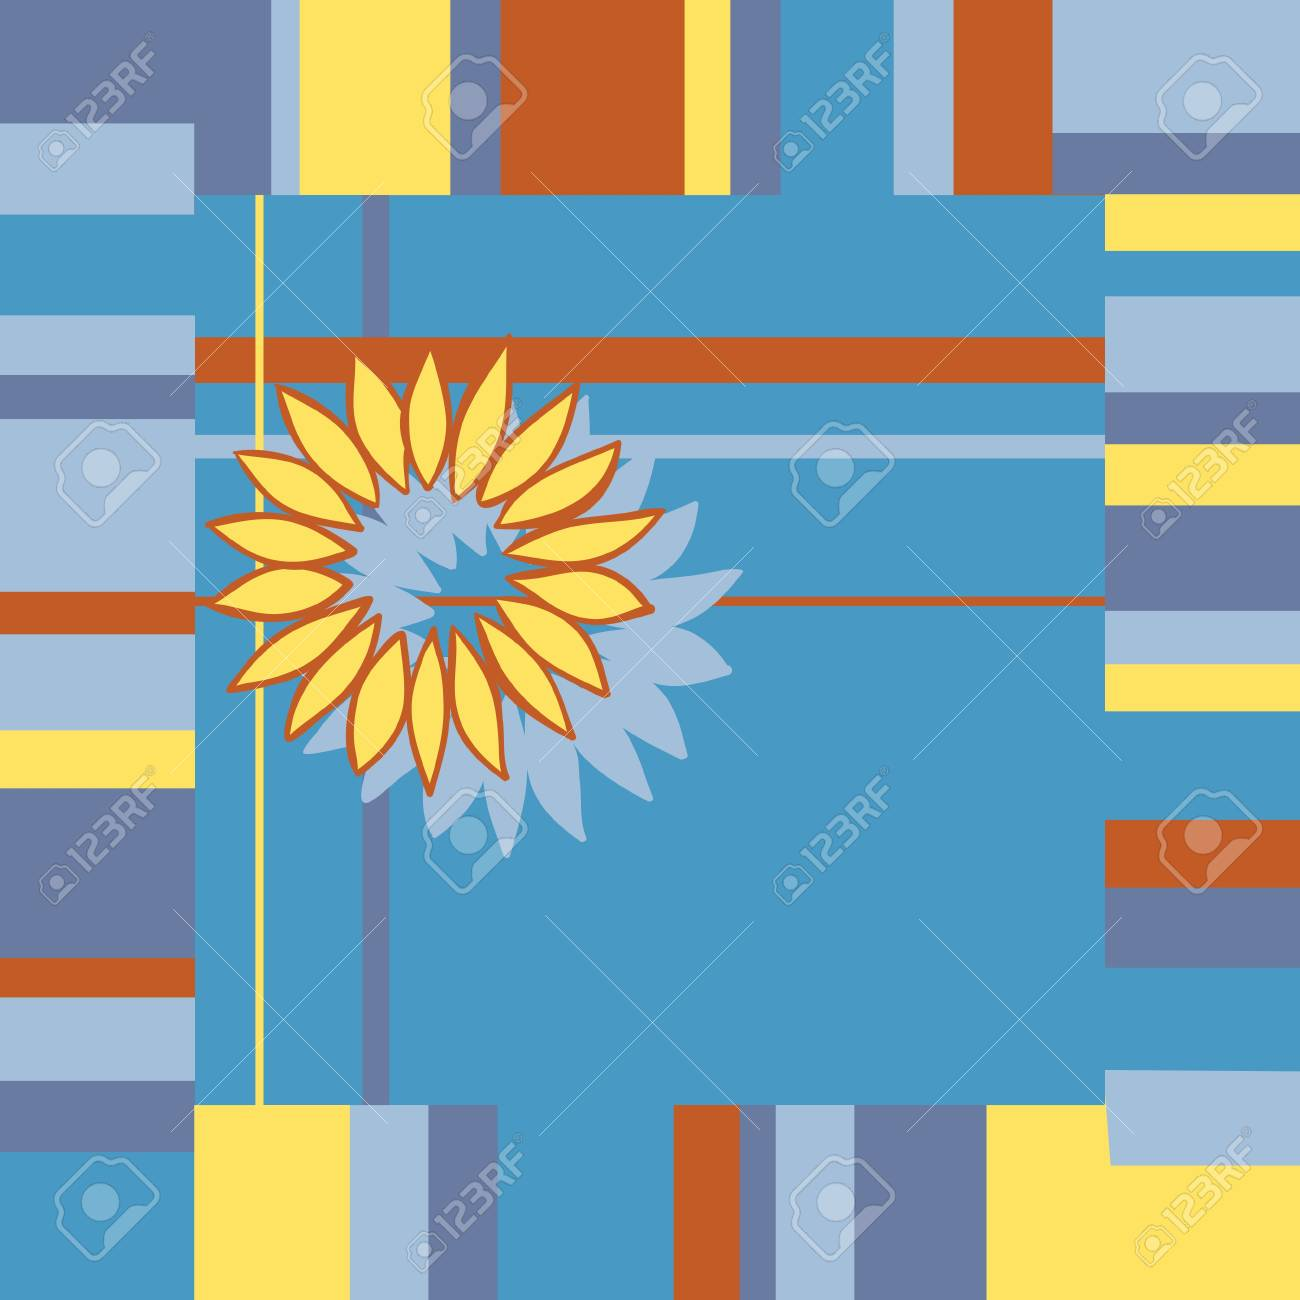 Bright abstract background illustration Stock Vector - 11433012